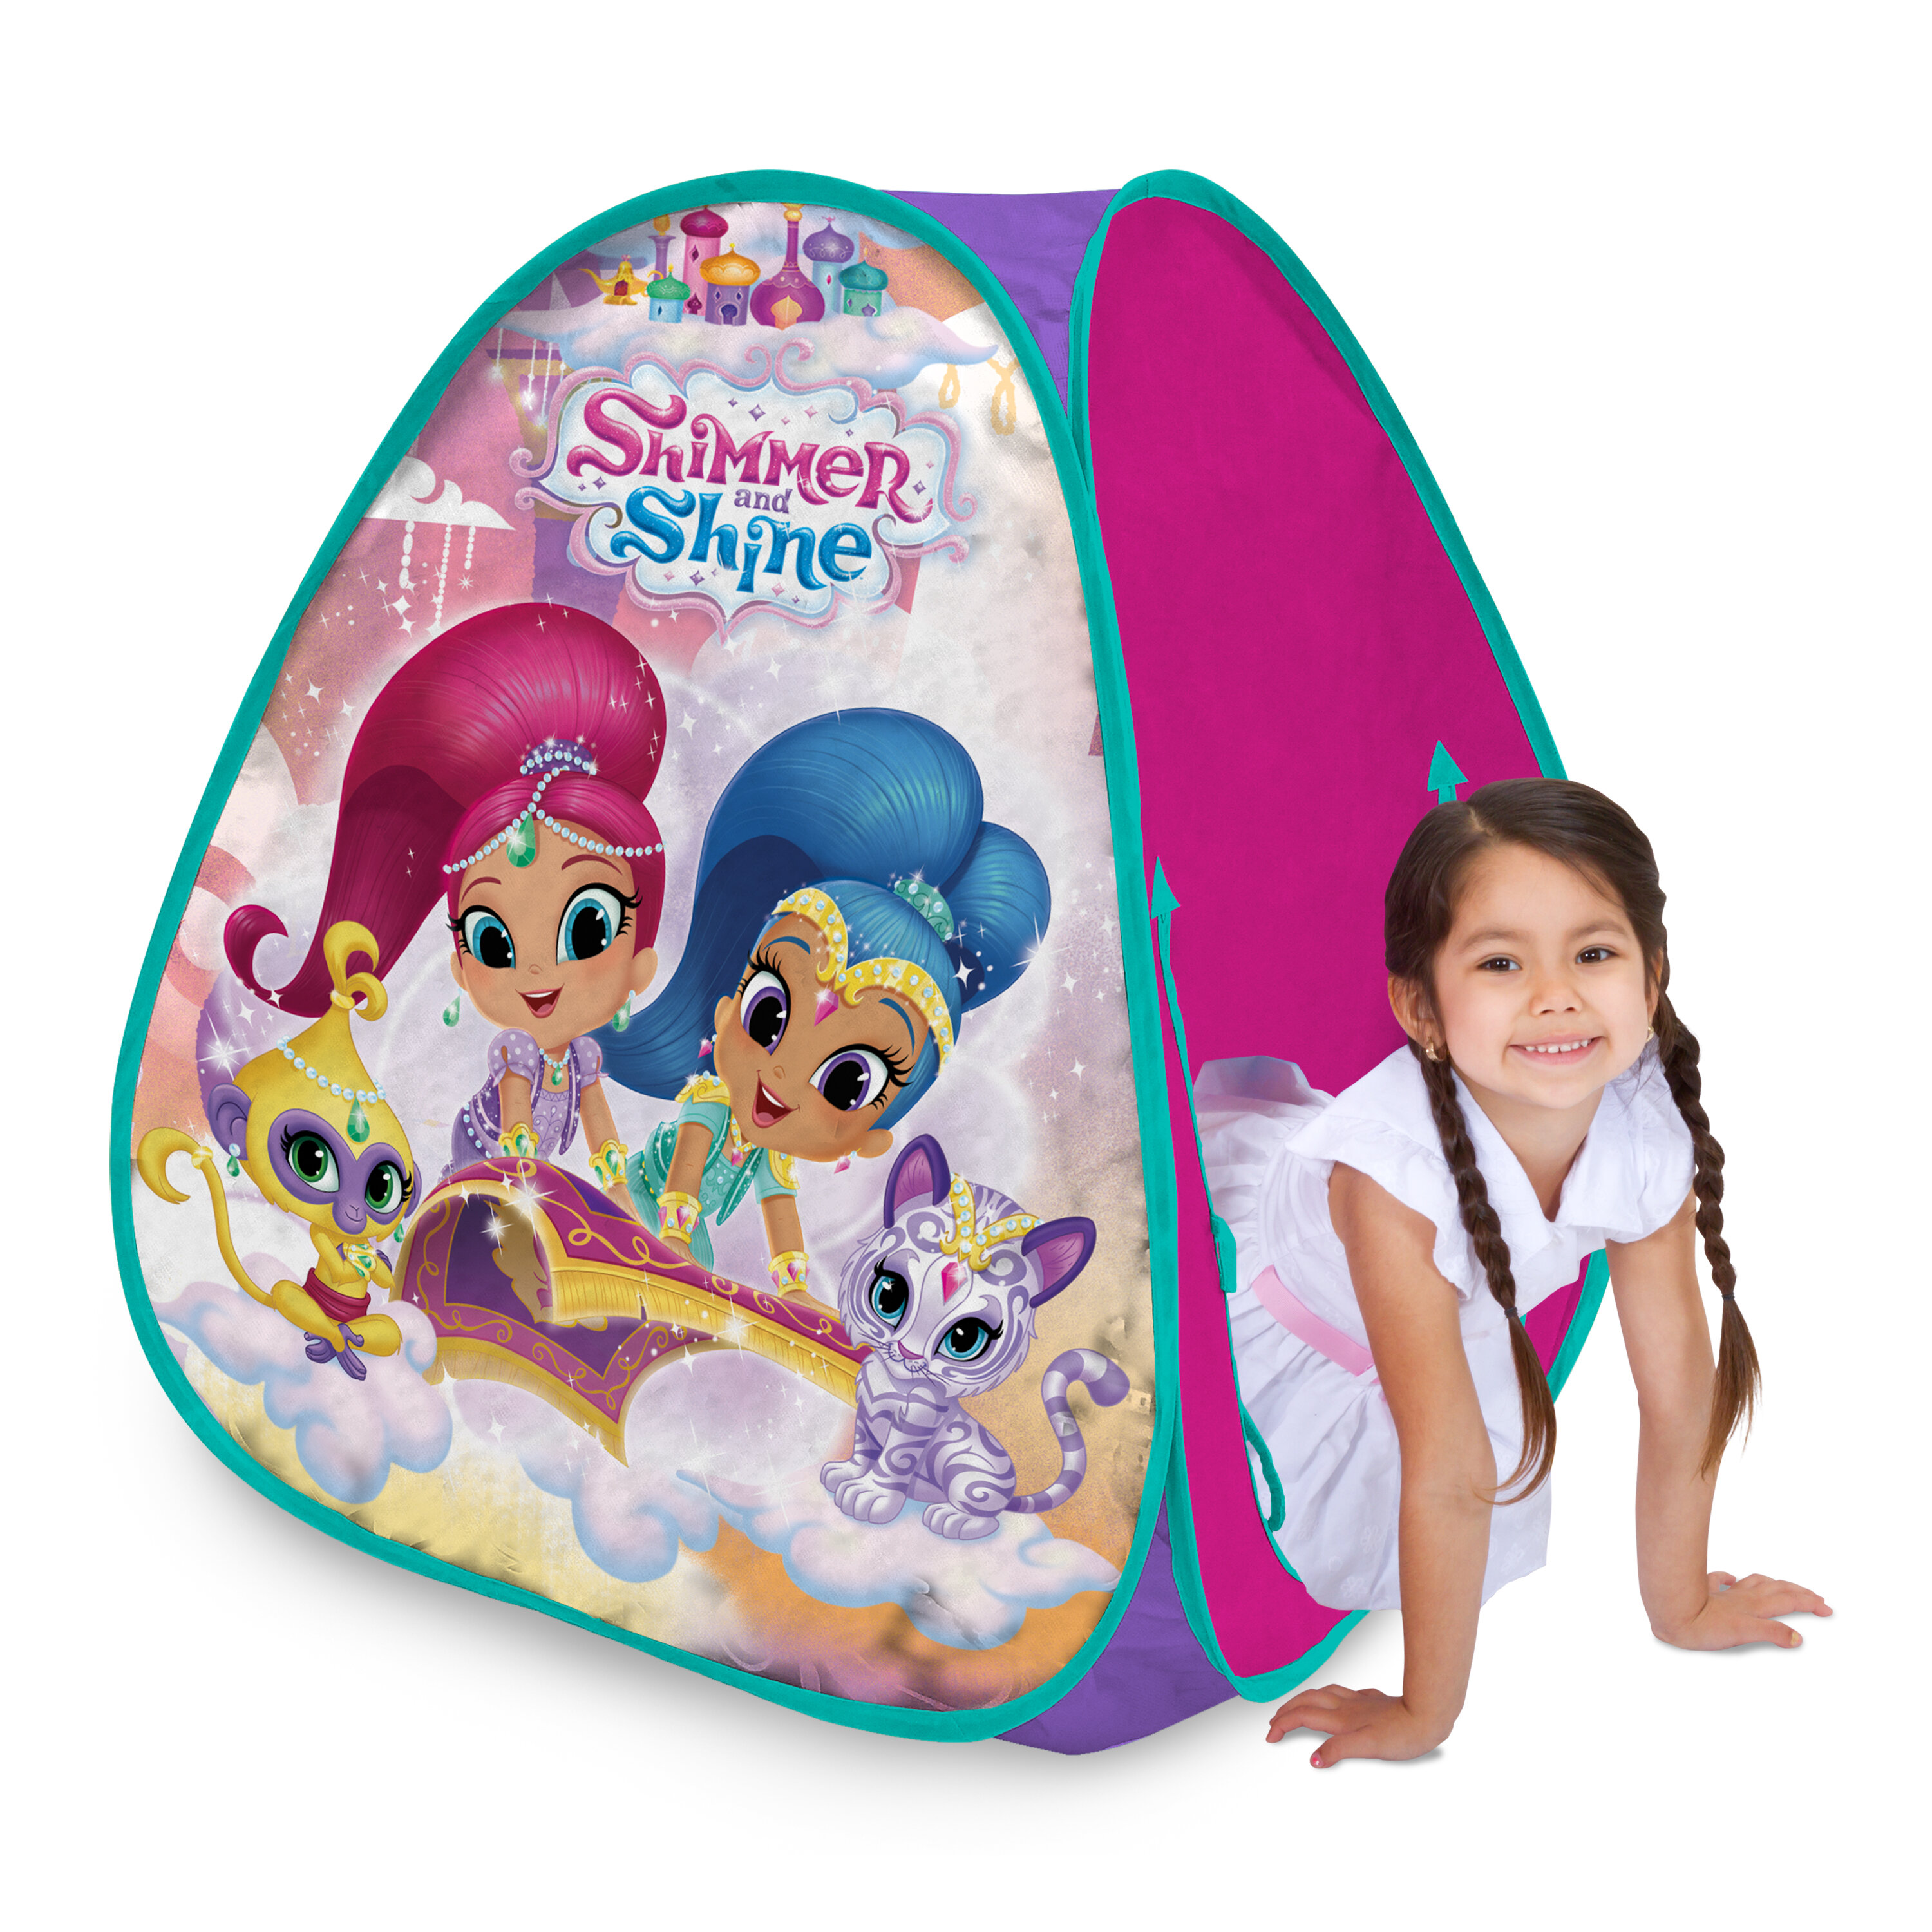 sc 1 st  Wayfair & Playhut Classic Hideaway Shimmer u0026 Shine Play Tent u0026 Reviews | Wayfair